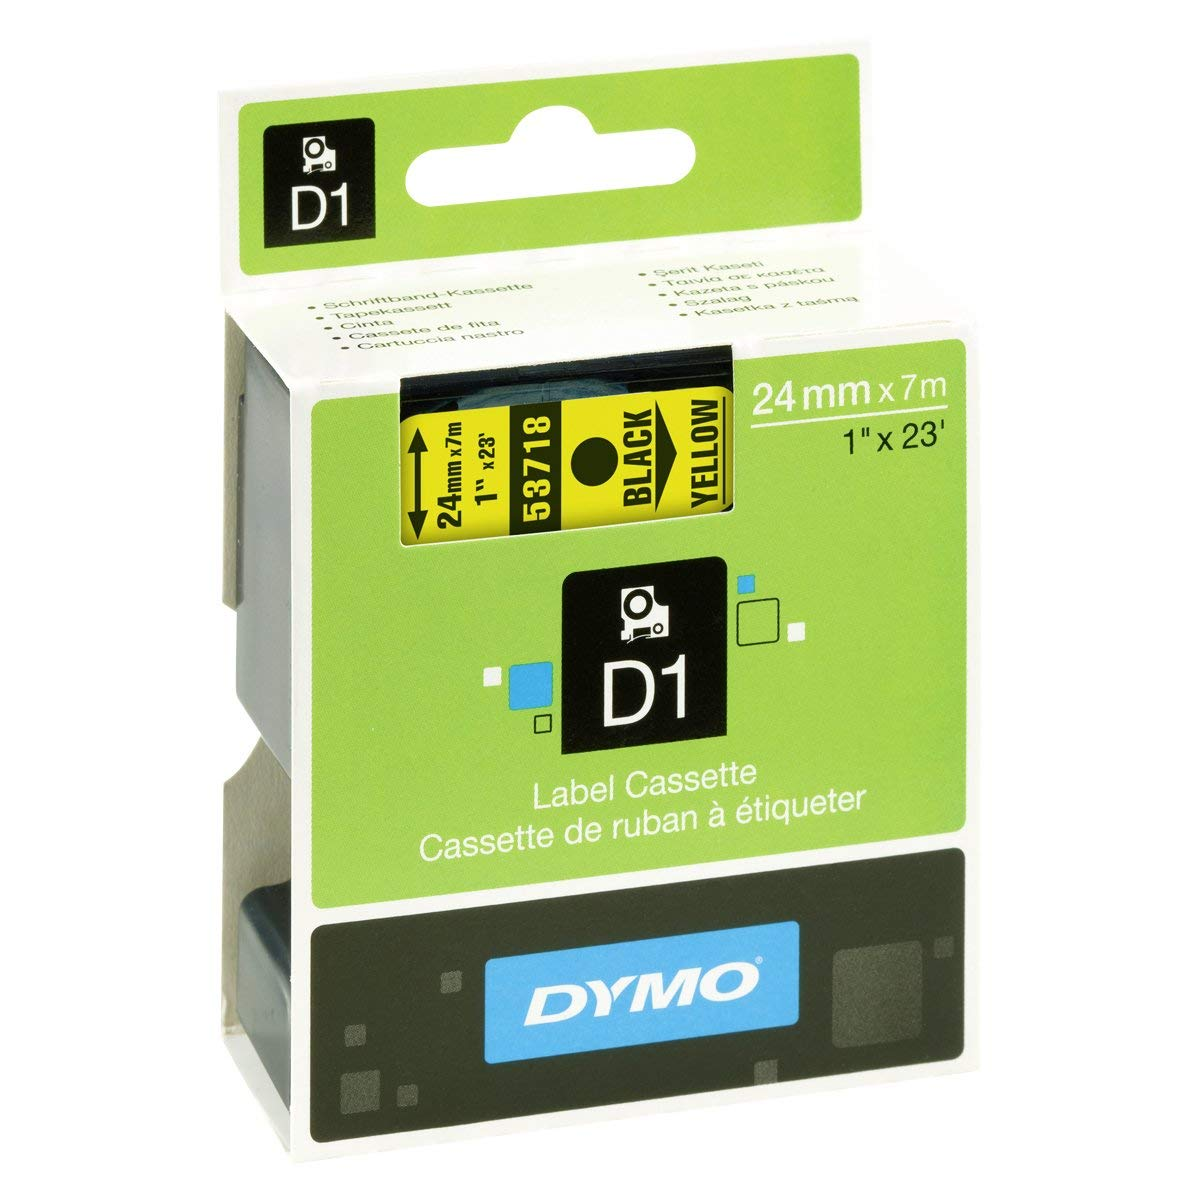 Dymo S0720980 (53718) D1 Standard Self-Adhesive Label Tape 24mm x 7m - Black on Yellow (pc)